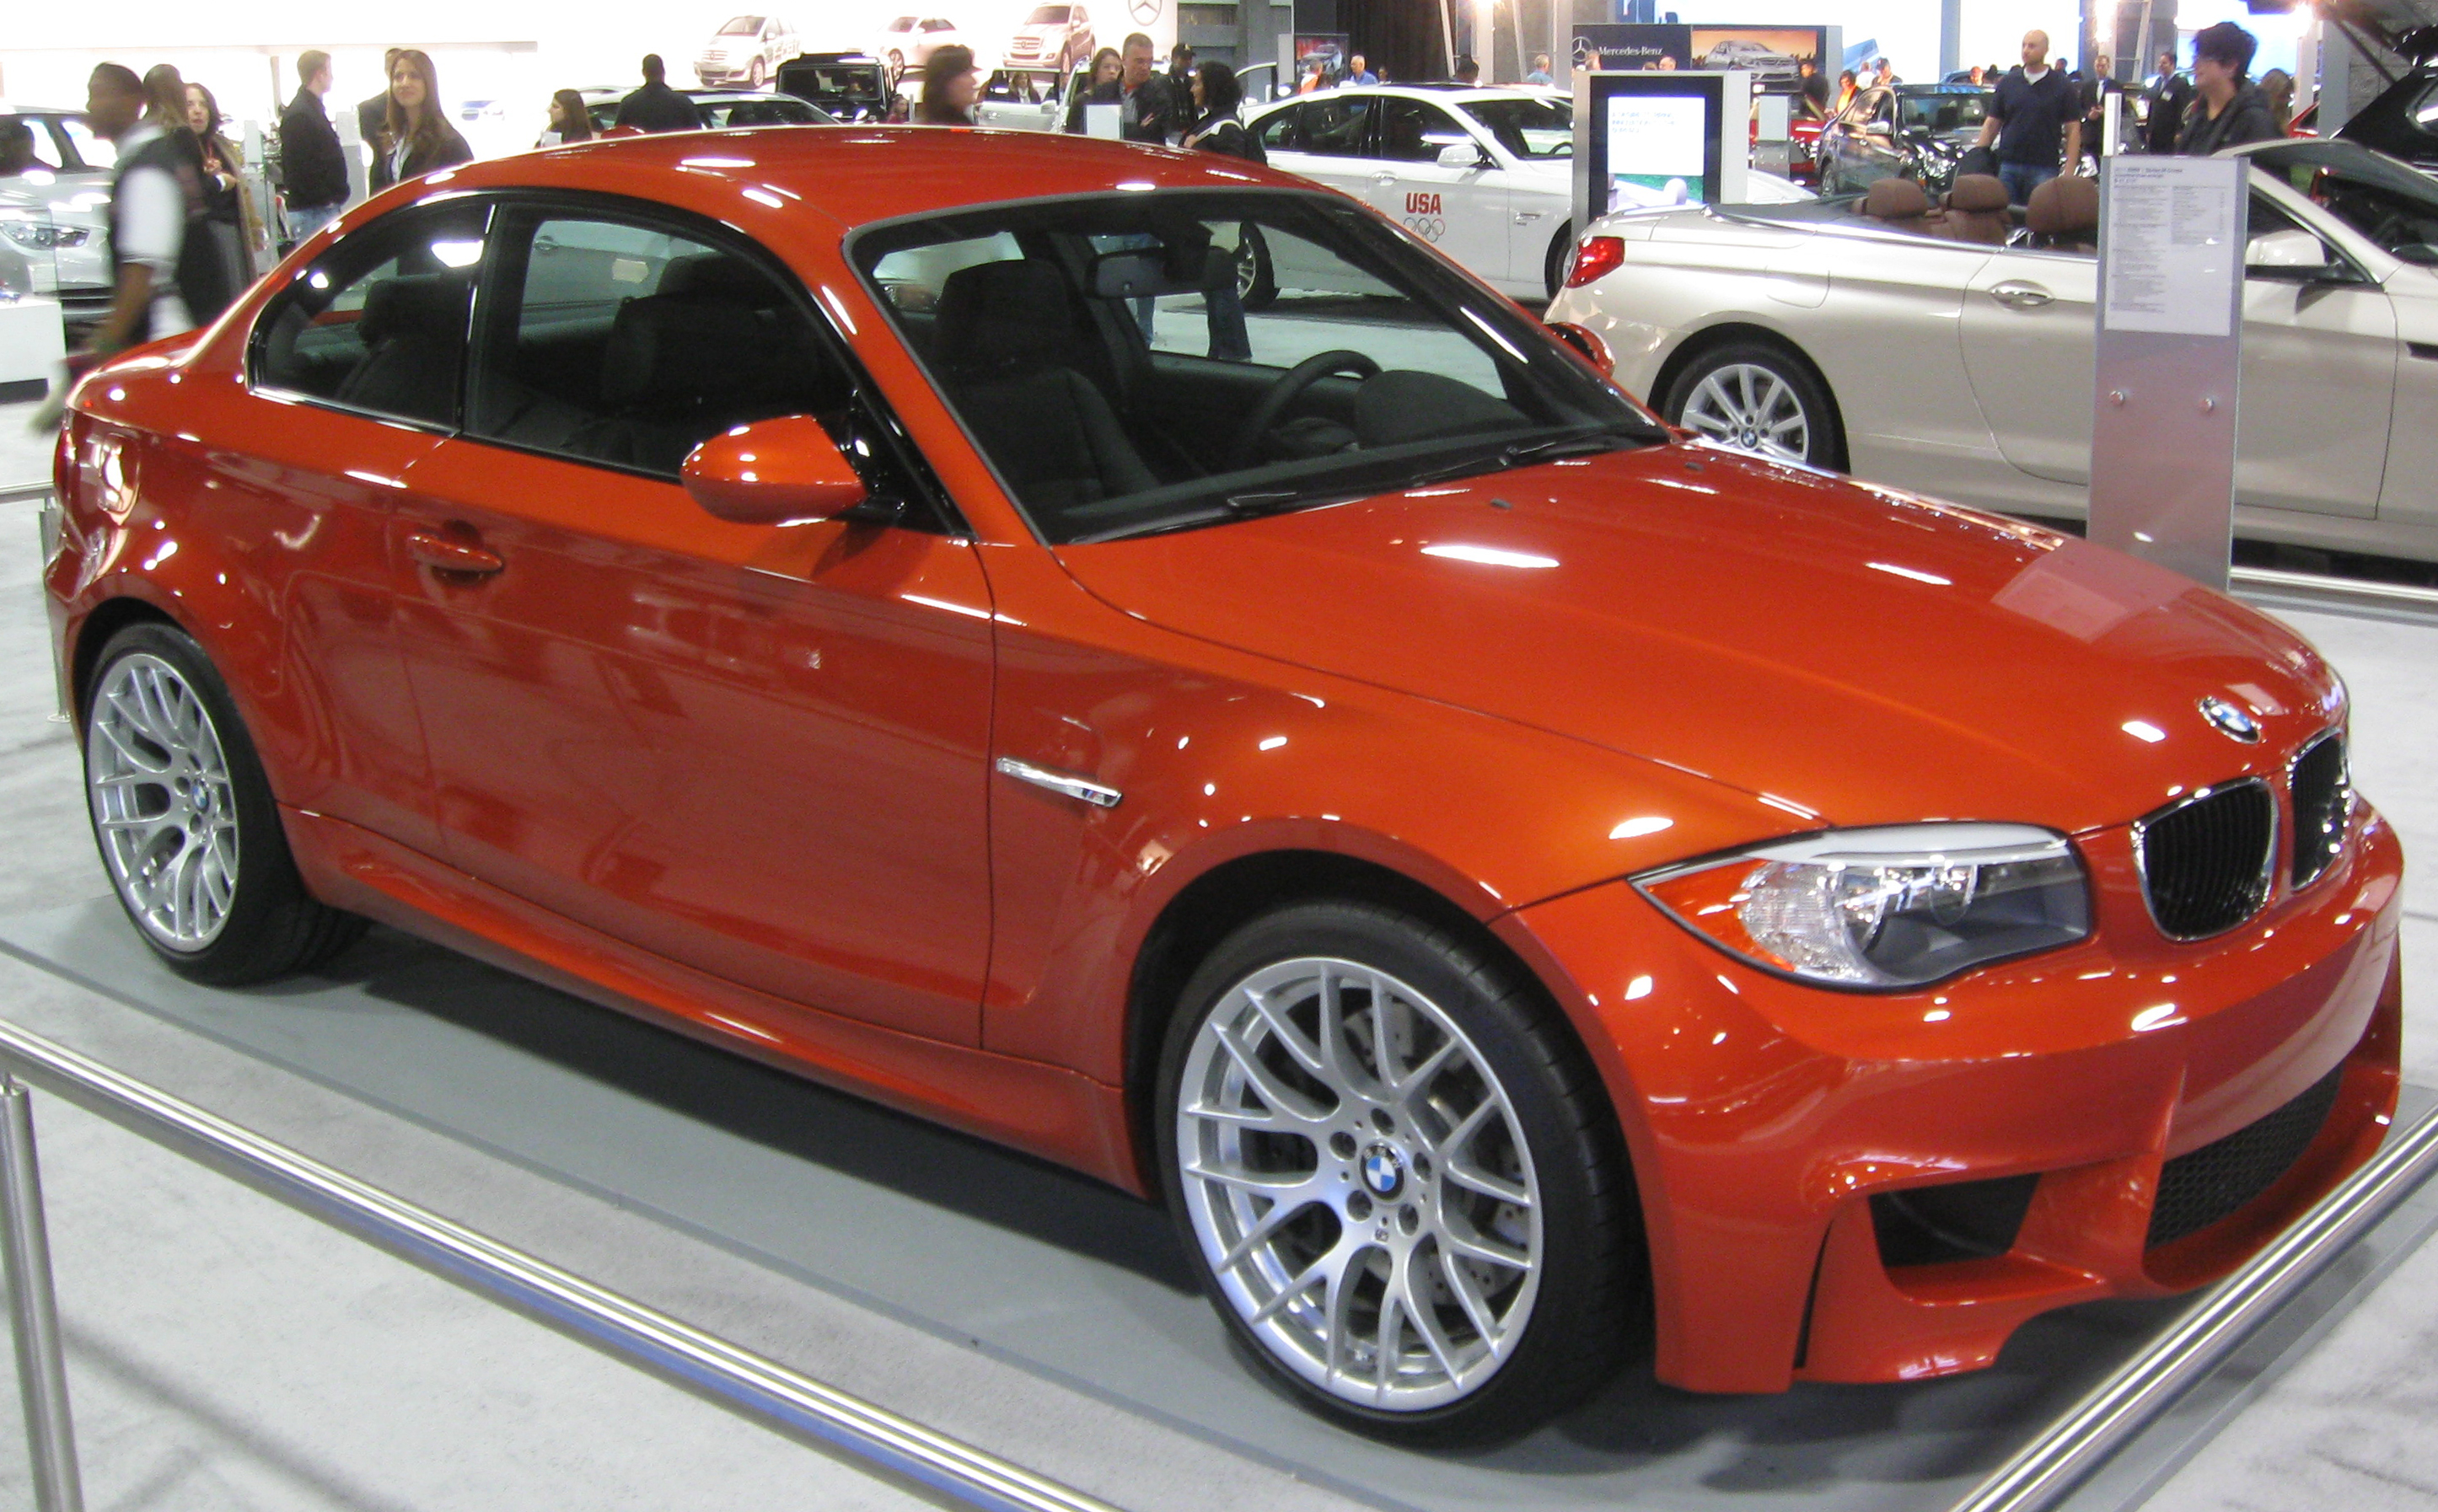 bmw 1er m coupe (e82) 2012 images #5